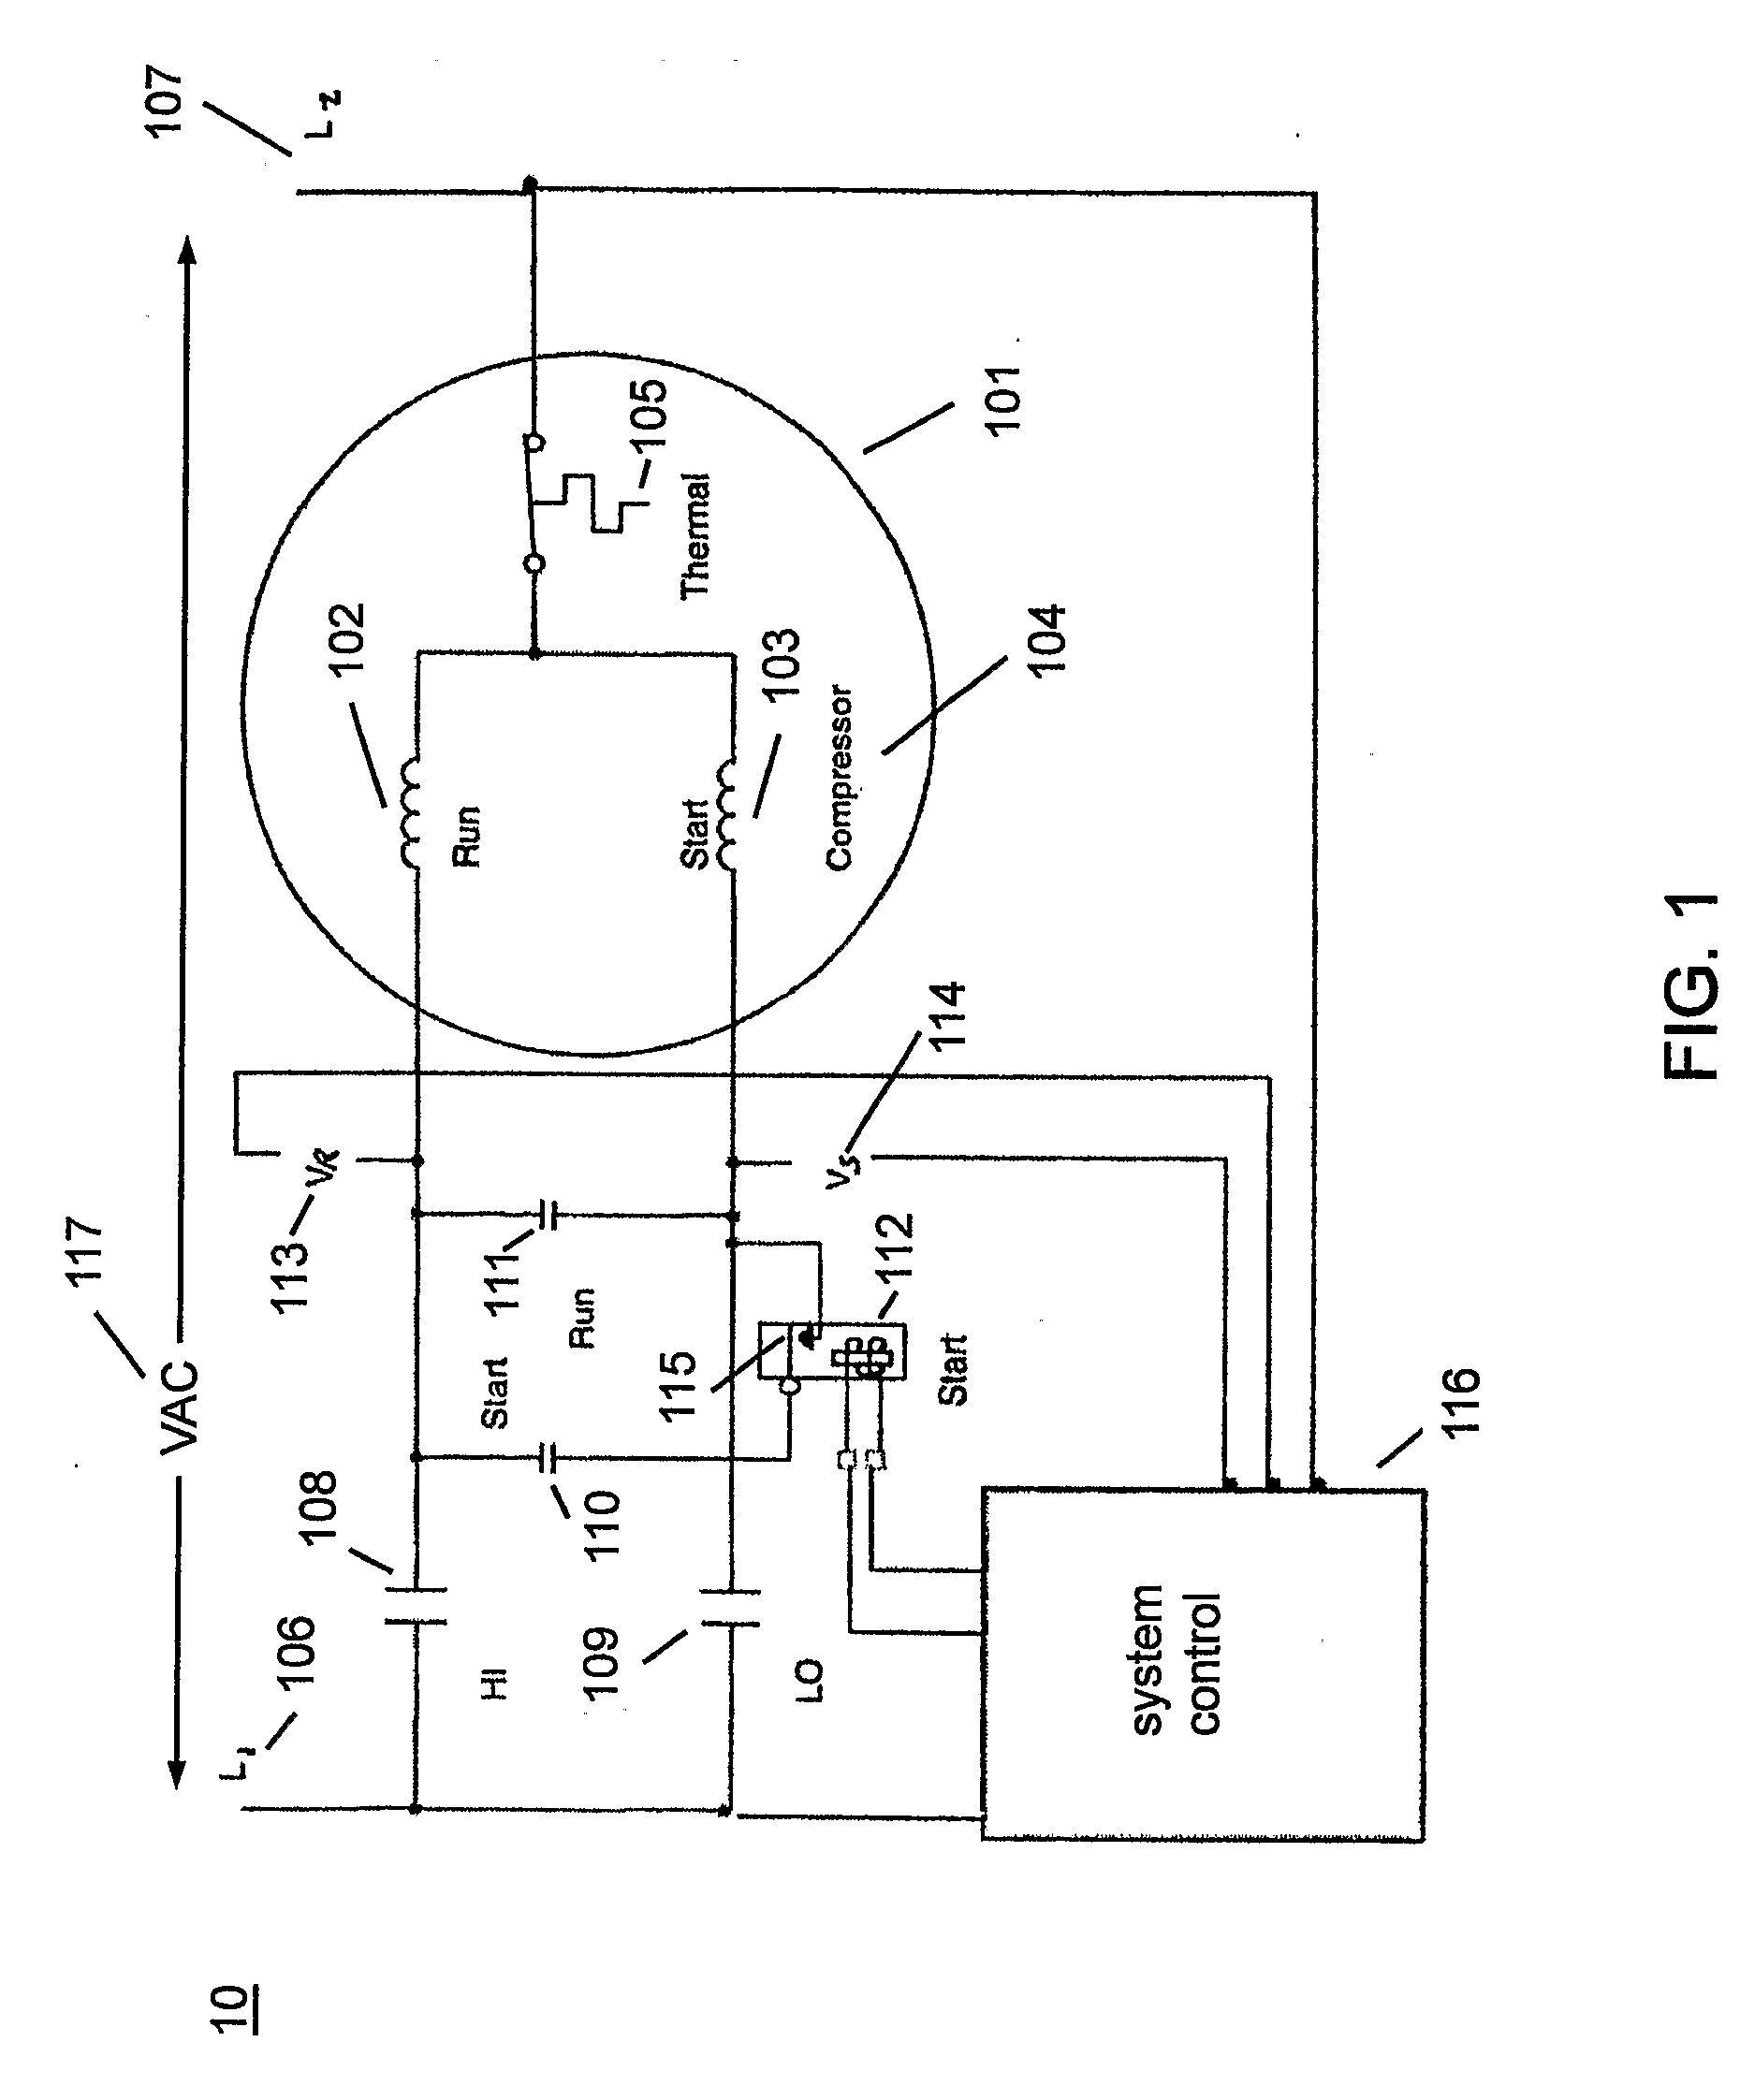 US20090001921A1 20090101 D00001 patent us20090001921 electronic method for starting a compressor cscr motor wiring diagram at gsmportal.co